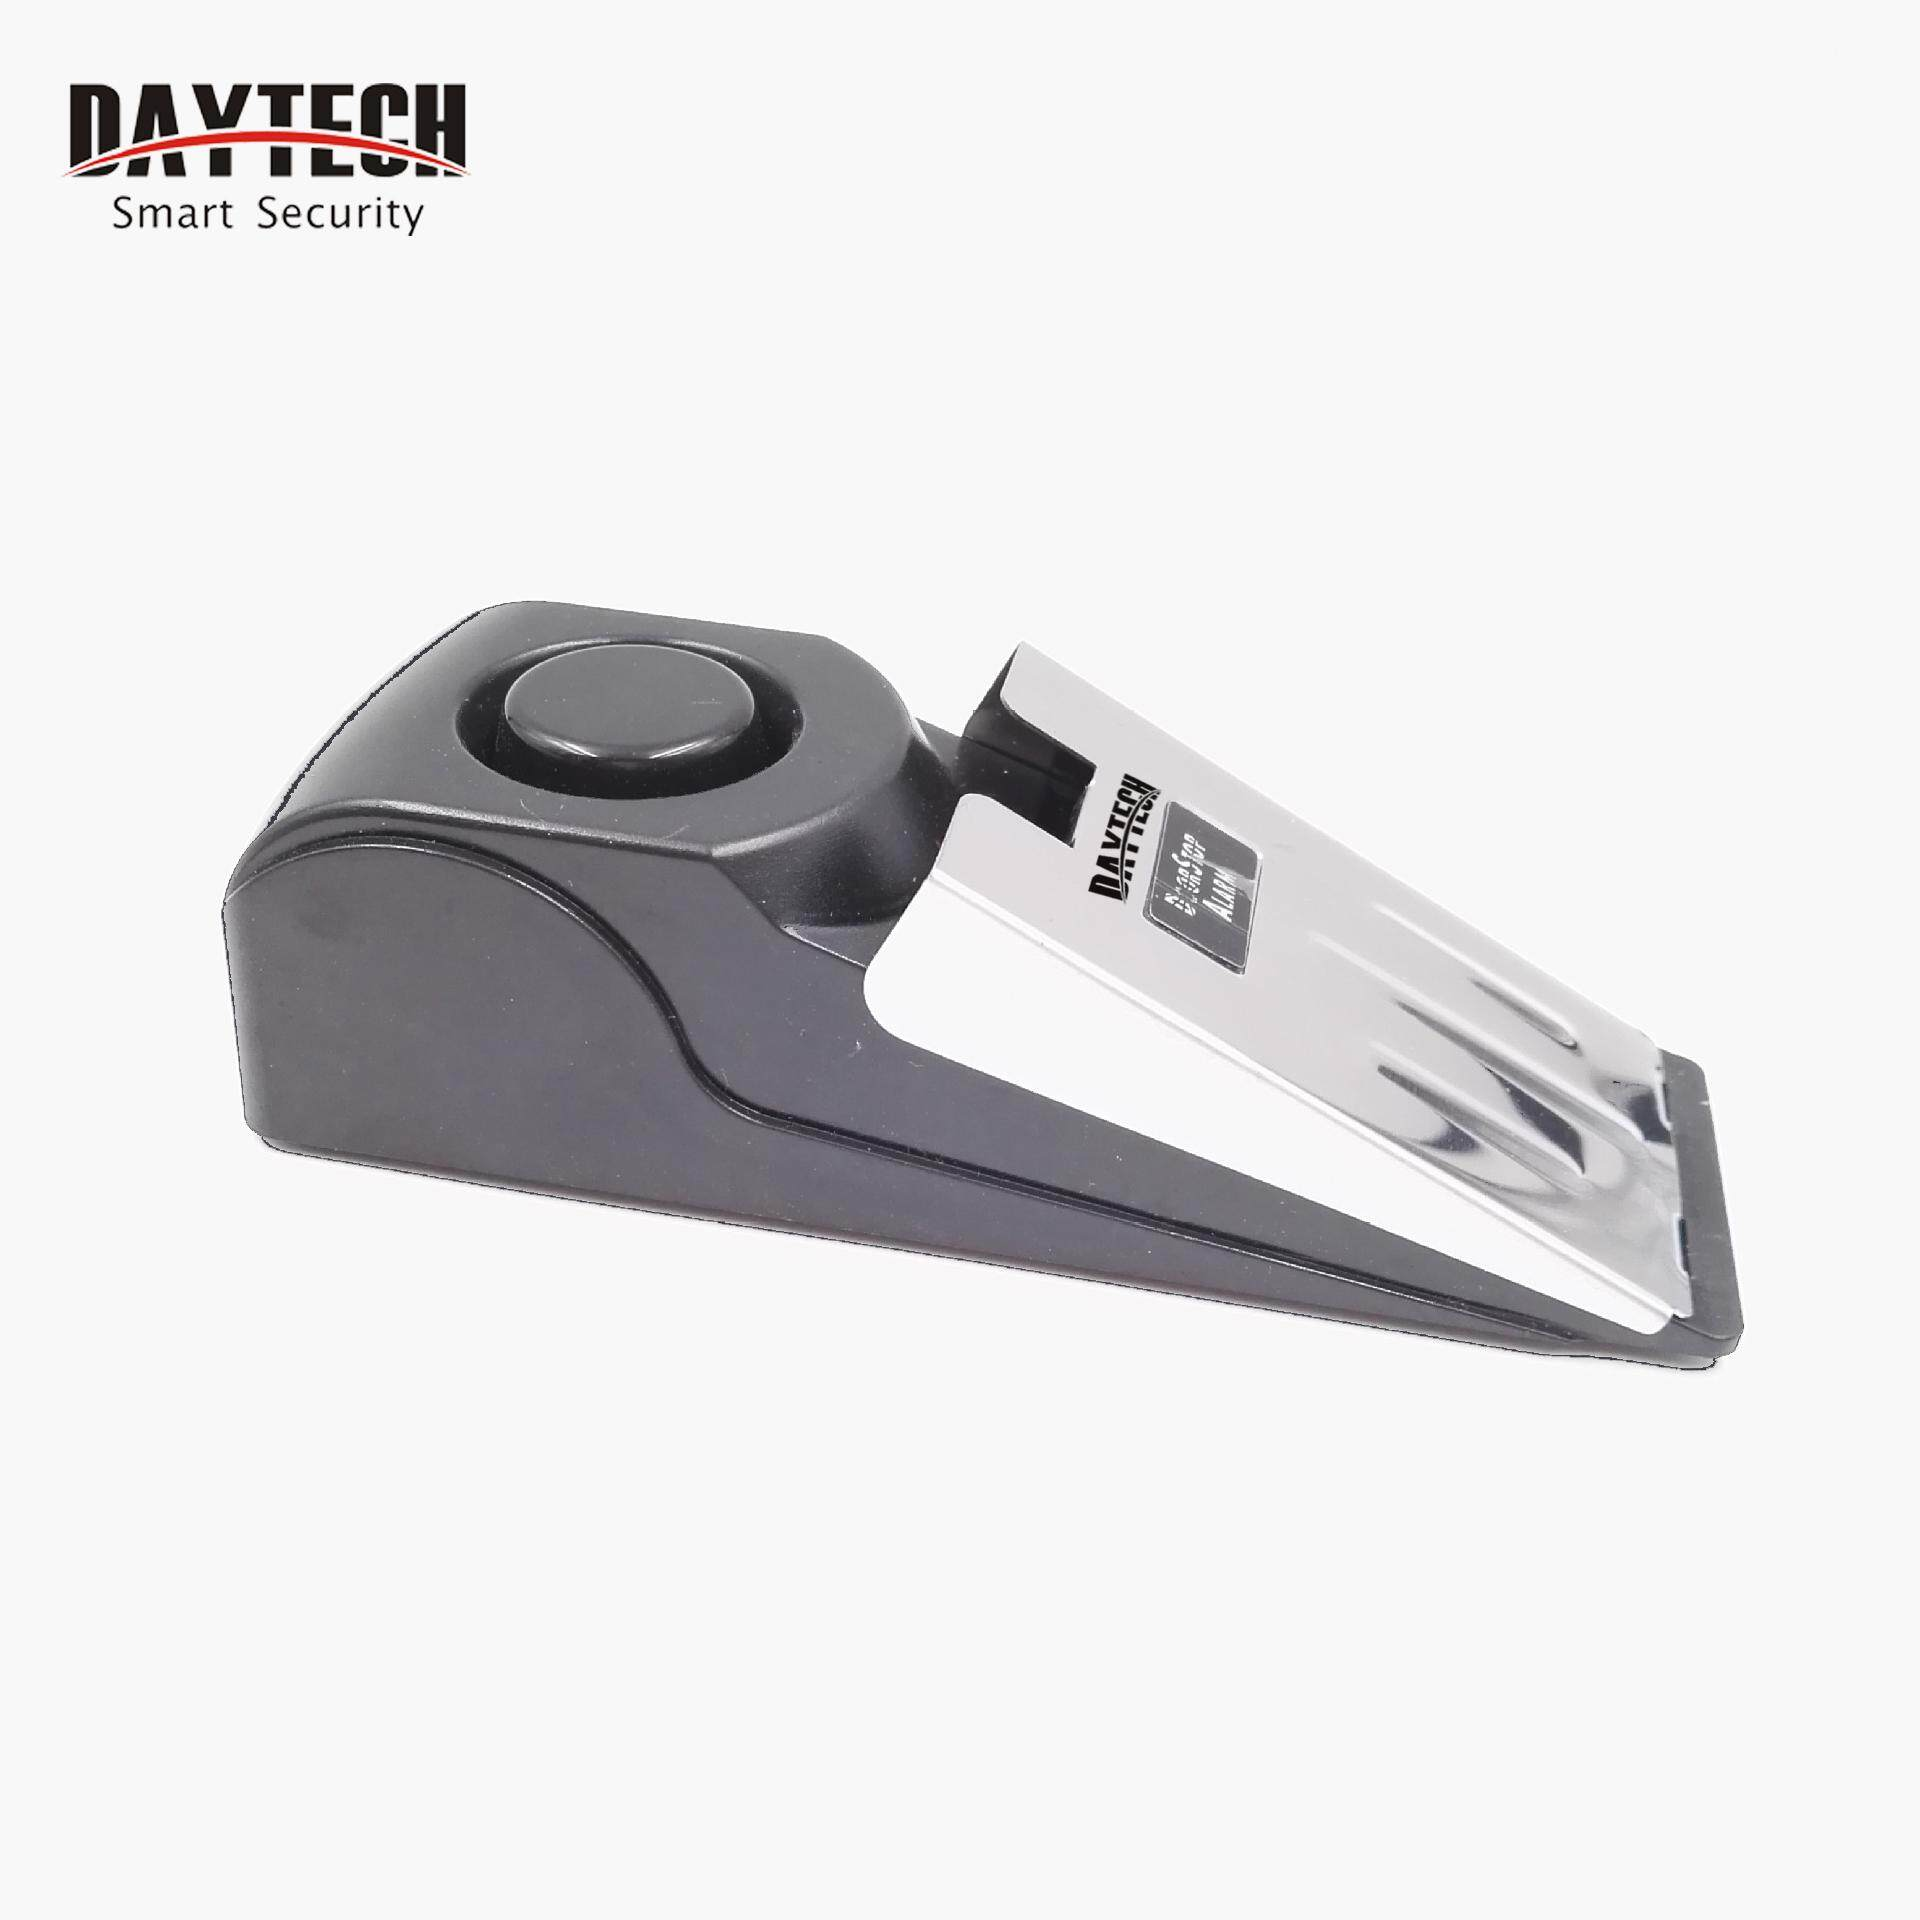 Daytech Door Stop Alarm Anti-Theft Smart Security System 120 Db Dsa01 By Daytech Official Store.